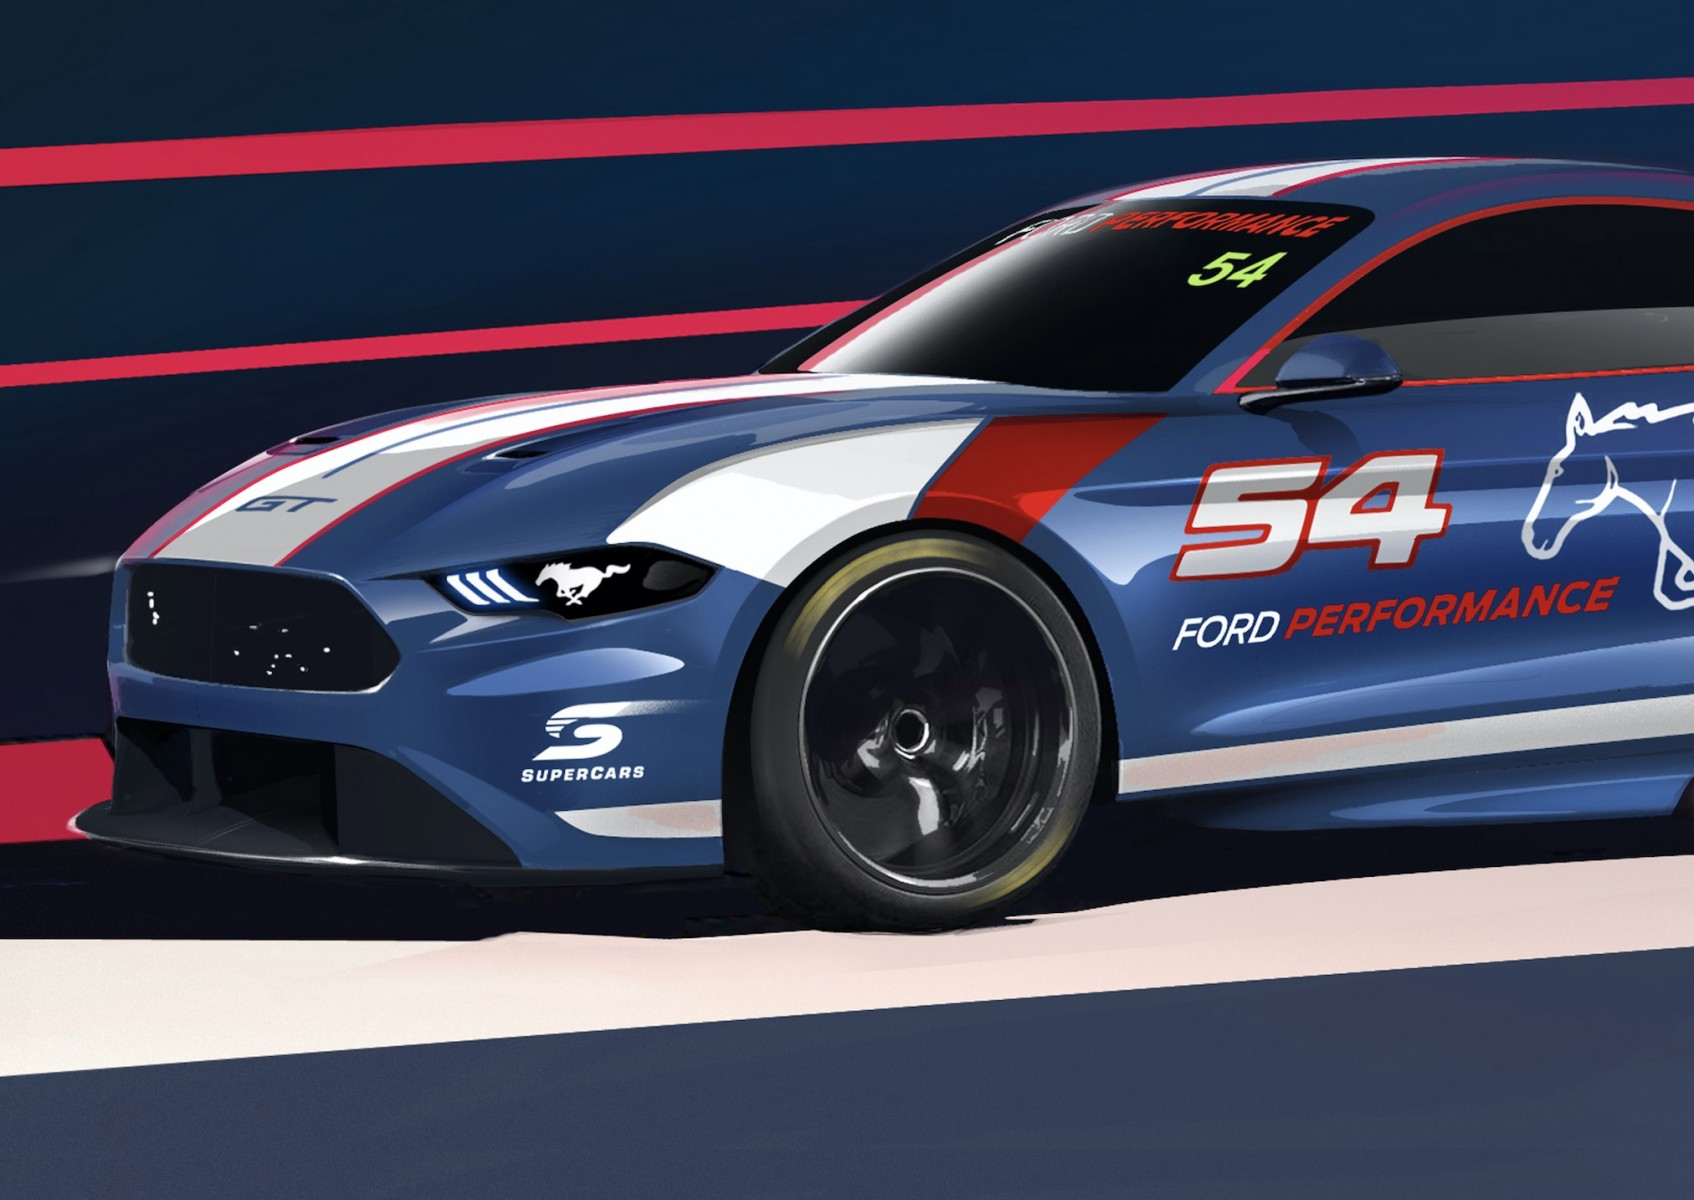 Approved: Ford Mustang To Replace Falcon For Next Season In Aussie Supercar Series